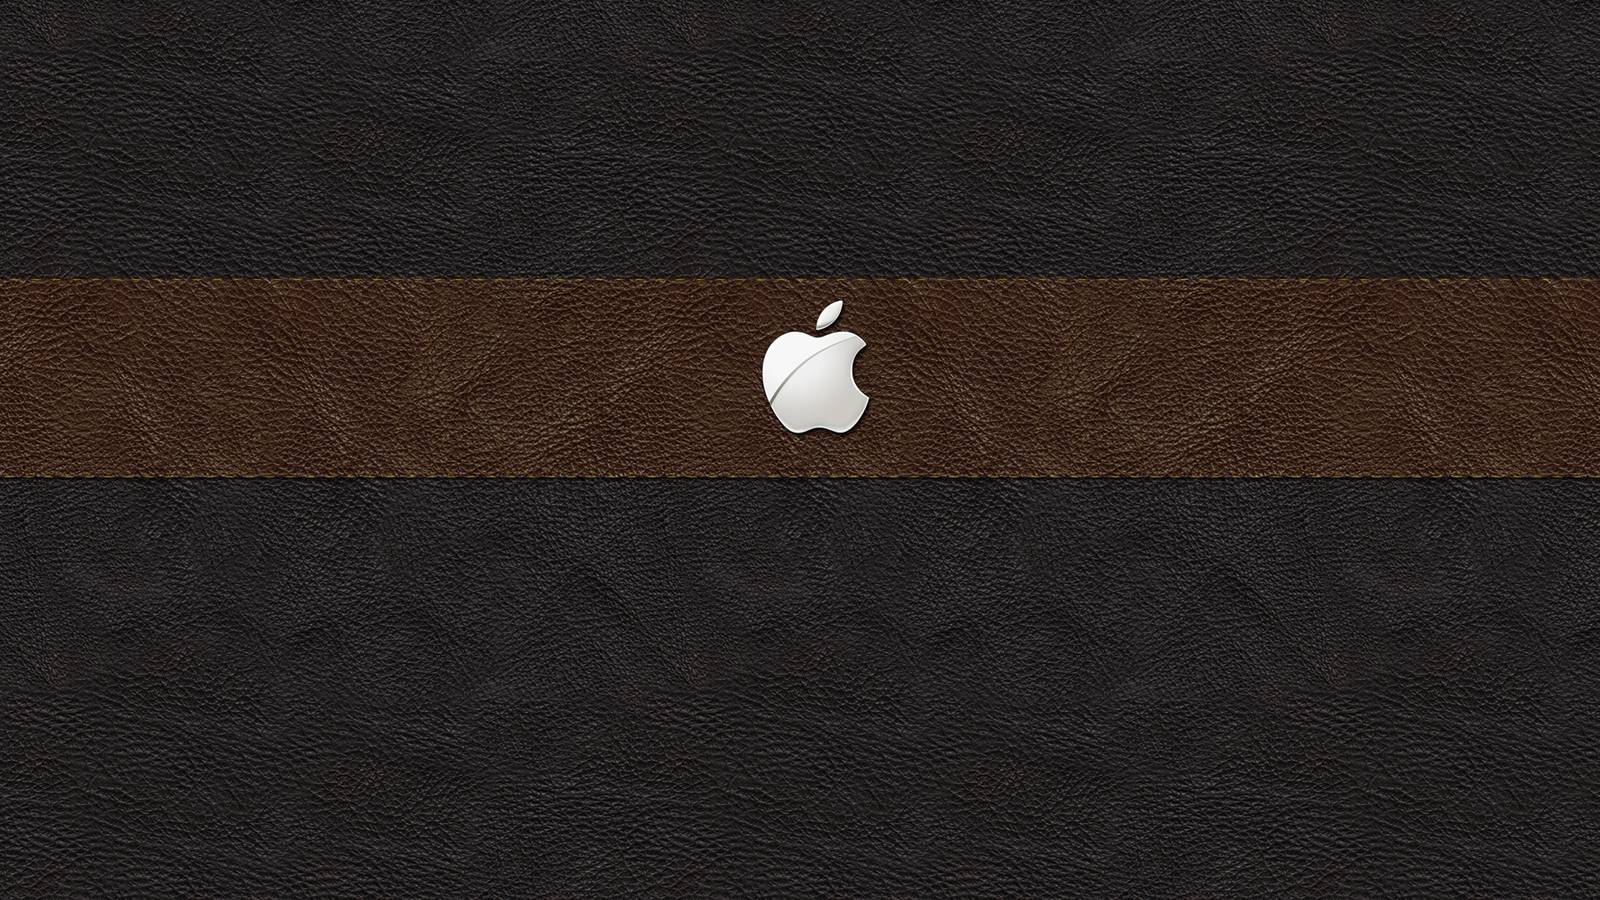 Leather Apple Wallpapers - Wallpaper Cave